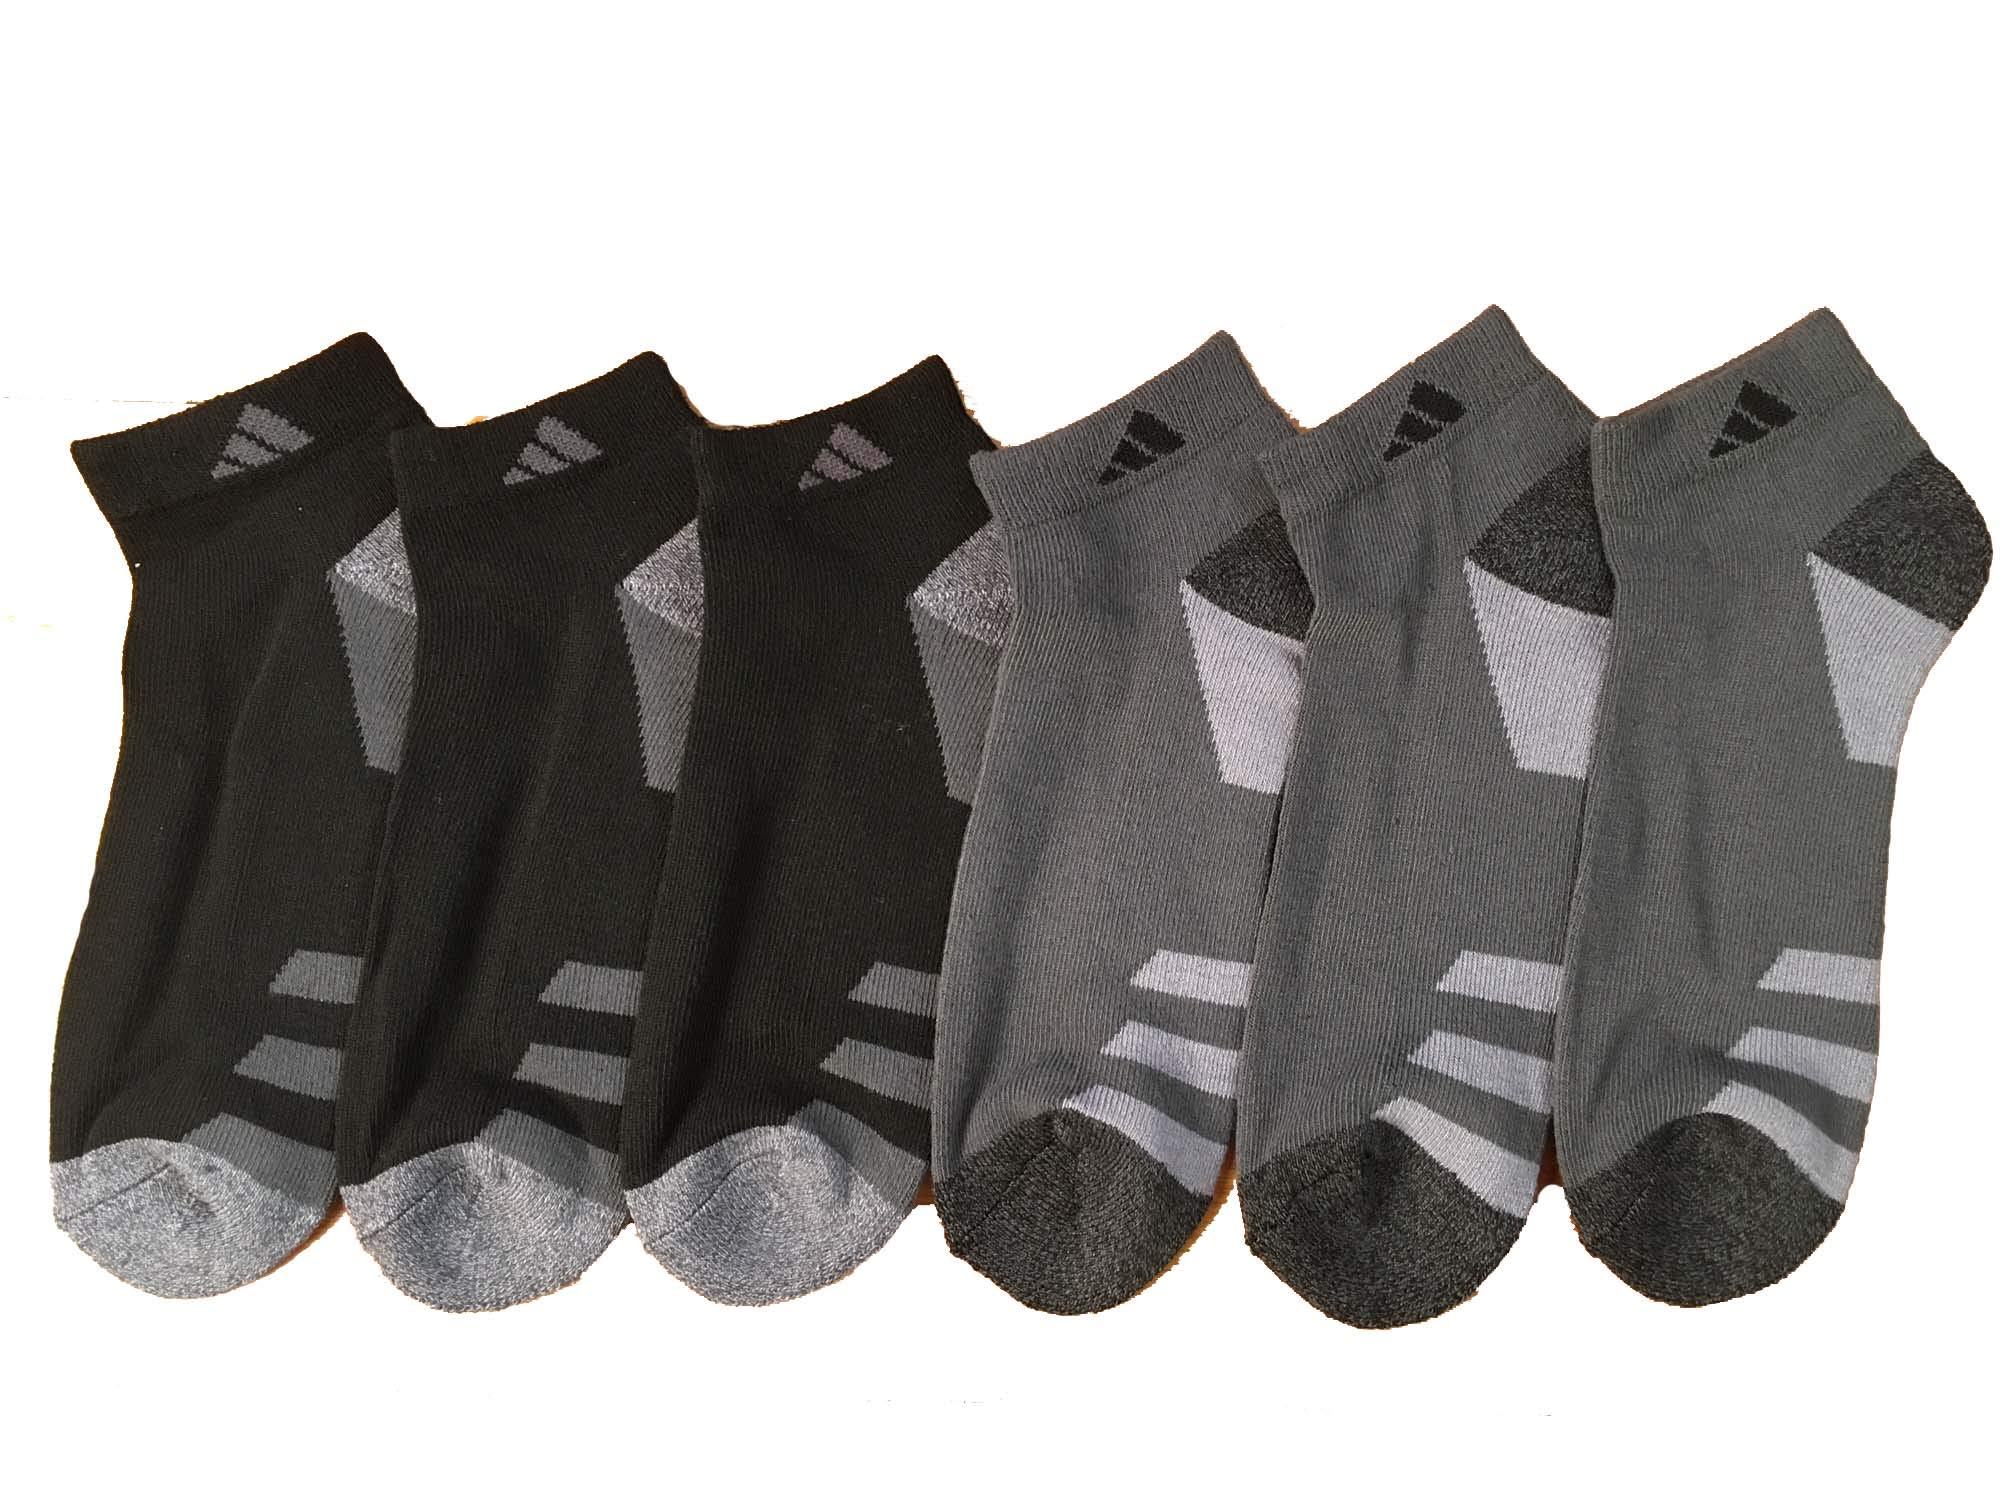 adidas Men's Athletic Low Cut Sock 6-Pack (Black/Charcoal/Heathered Logo) by adidas